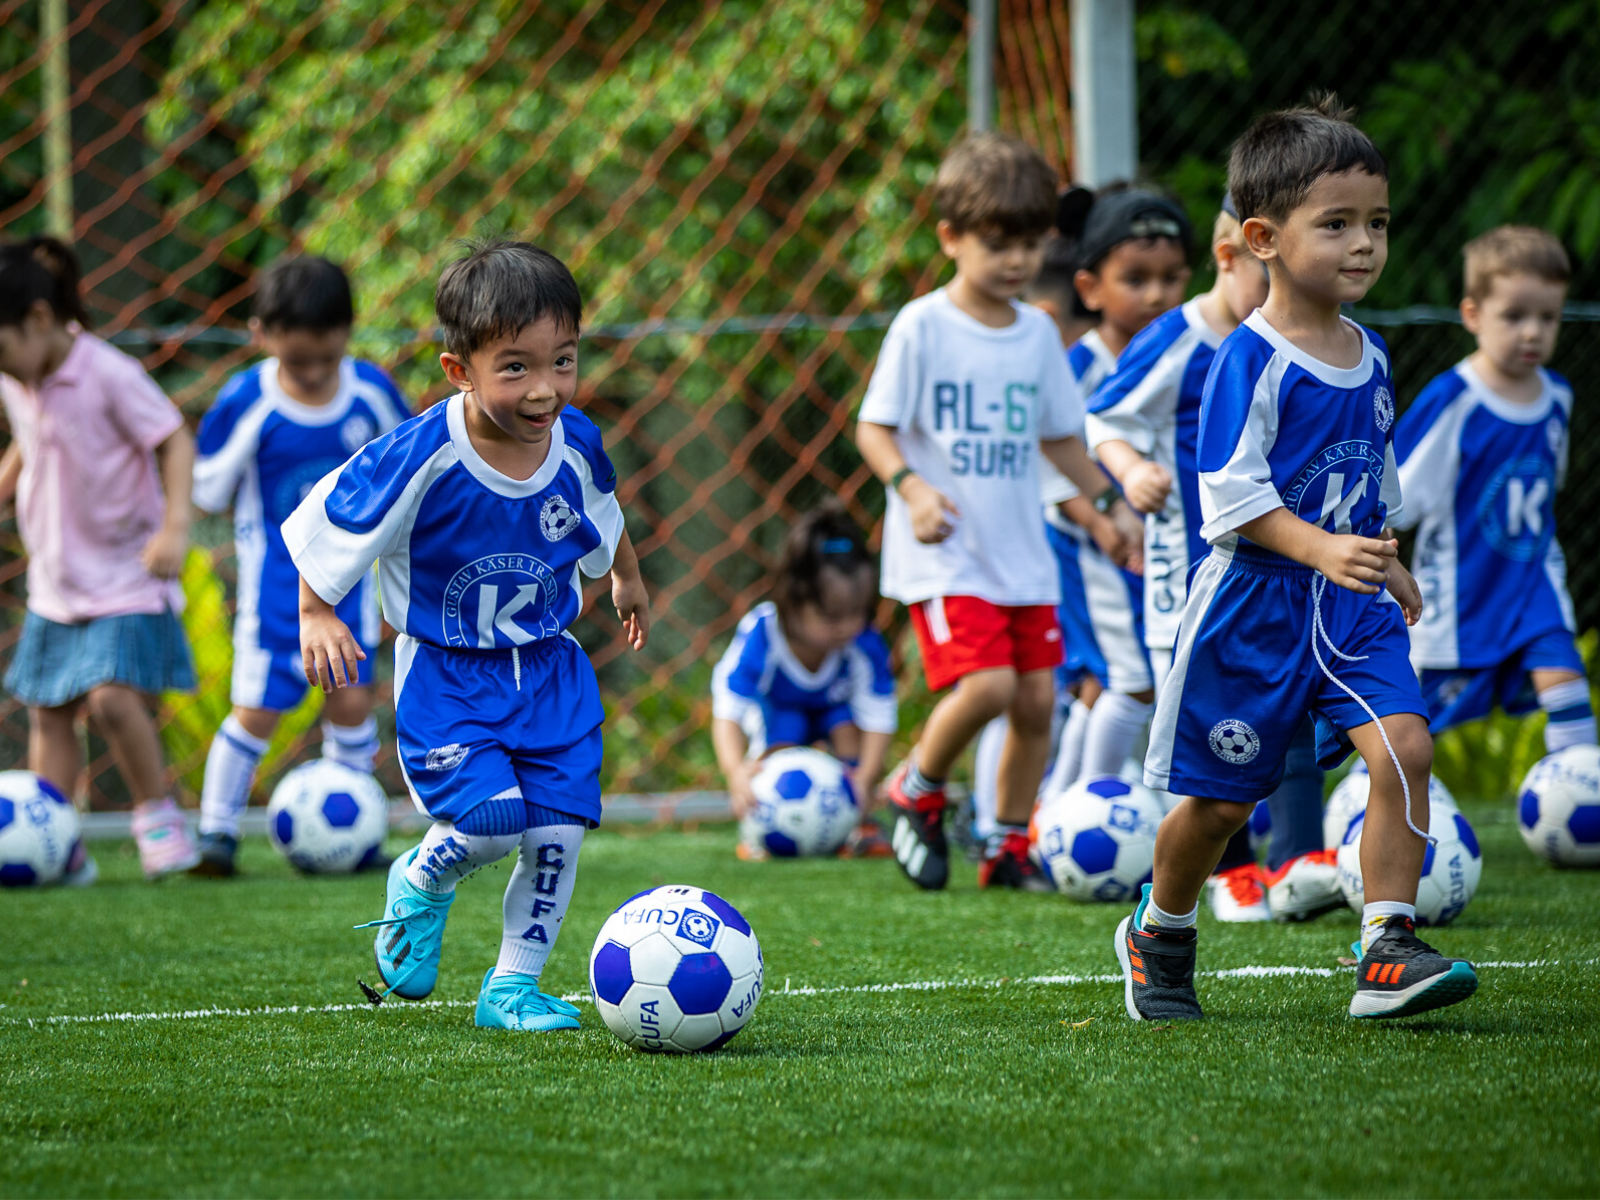 Holiday camp for kids playing football